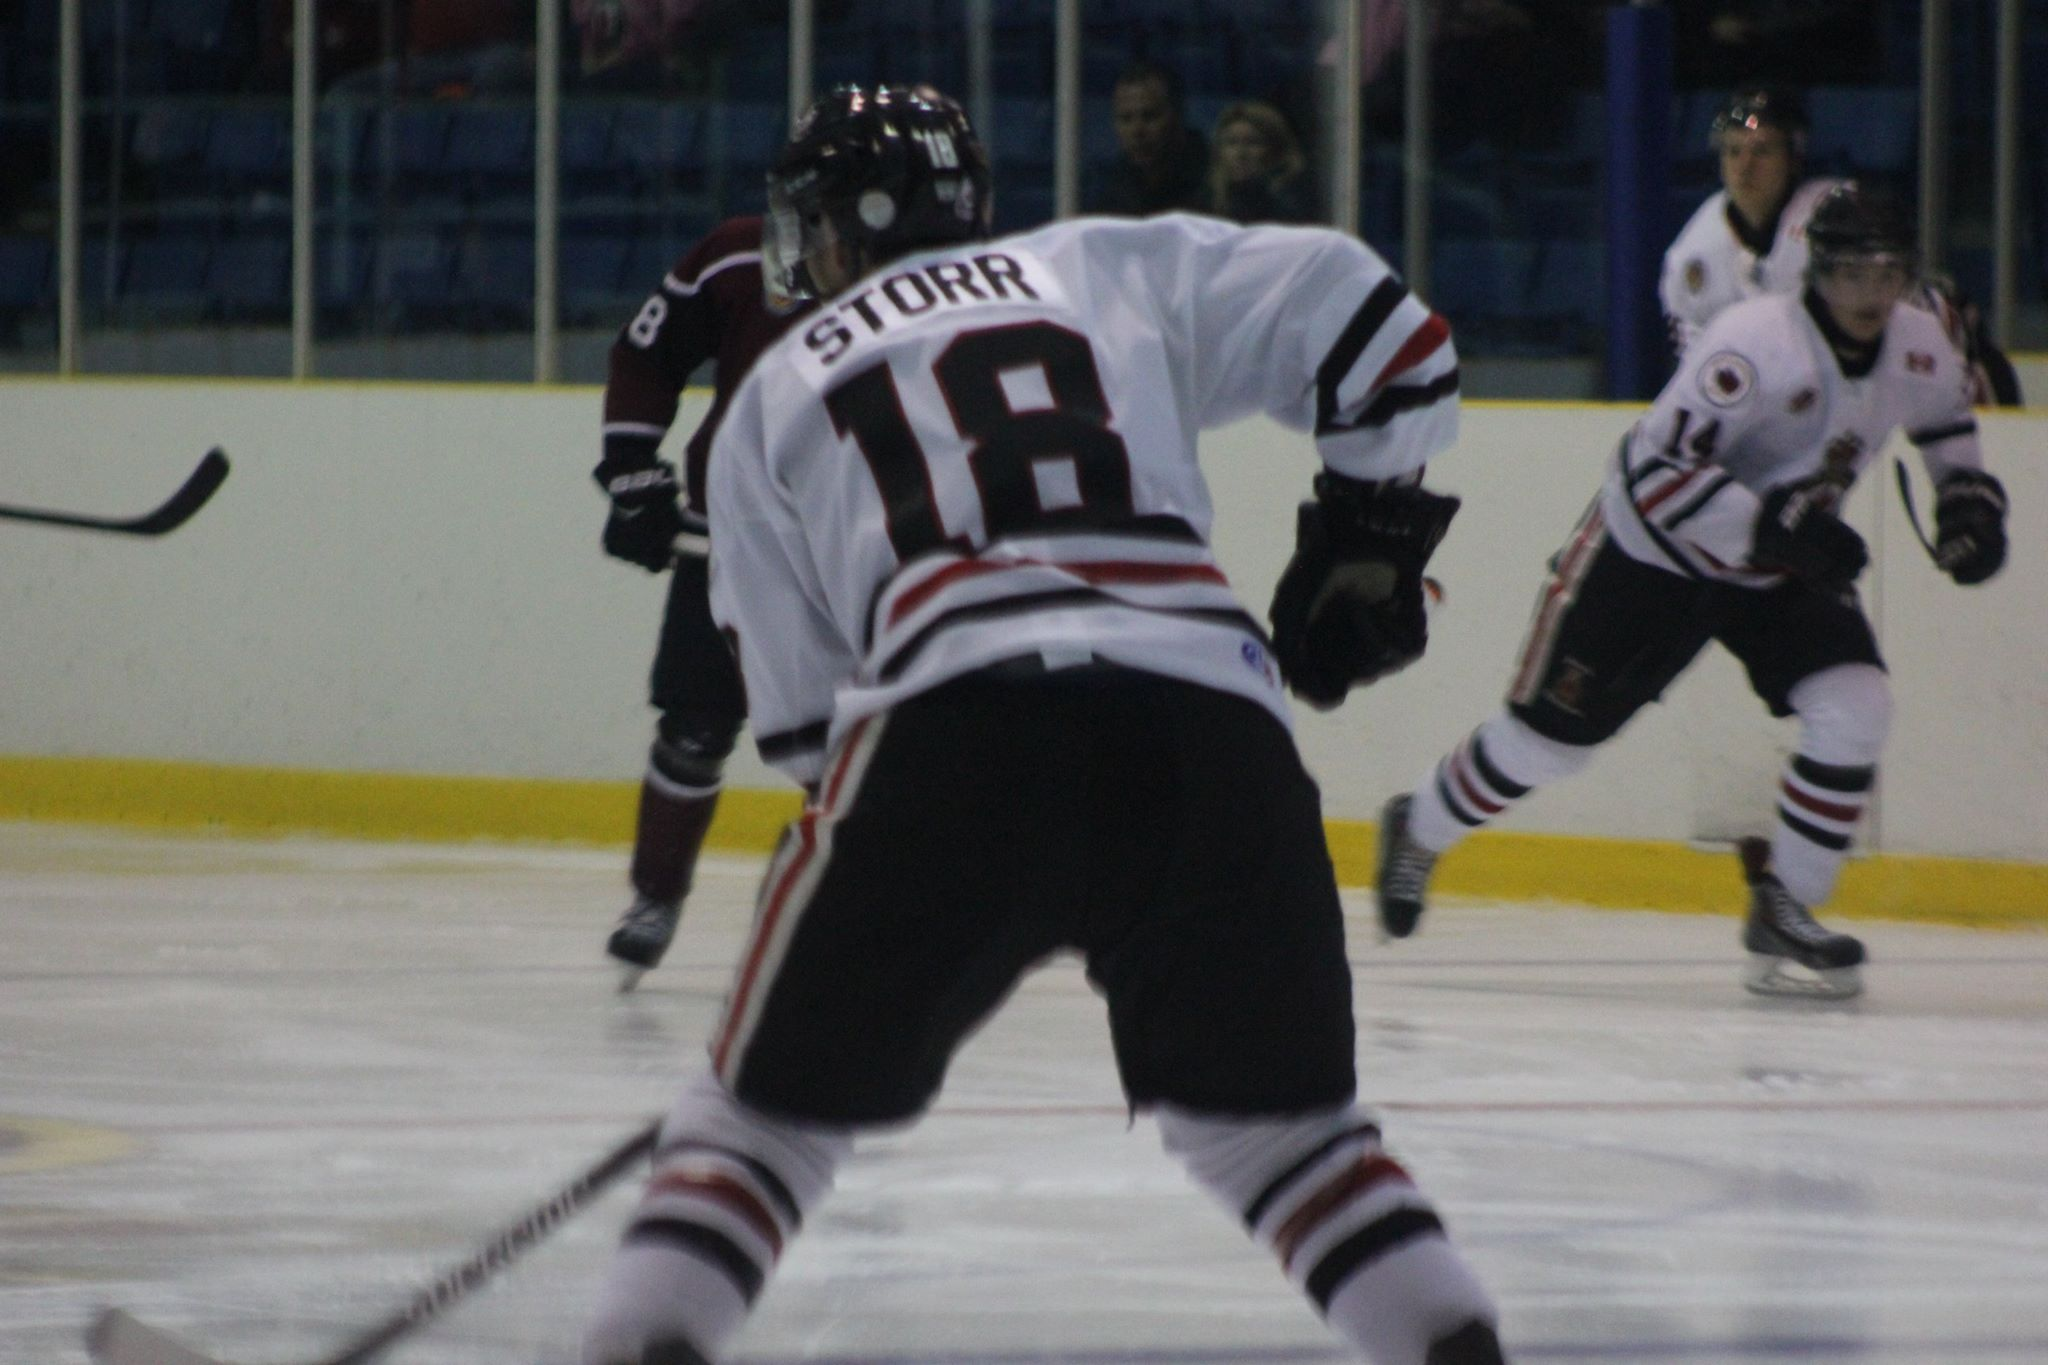 The Chatham Maroons take on the Sarnia Legionnaires, October 29, 2015. (Photo courtesy of Jocelyn McLaughlin)